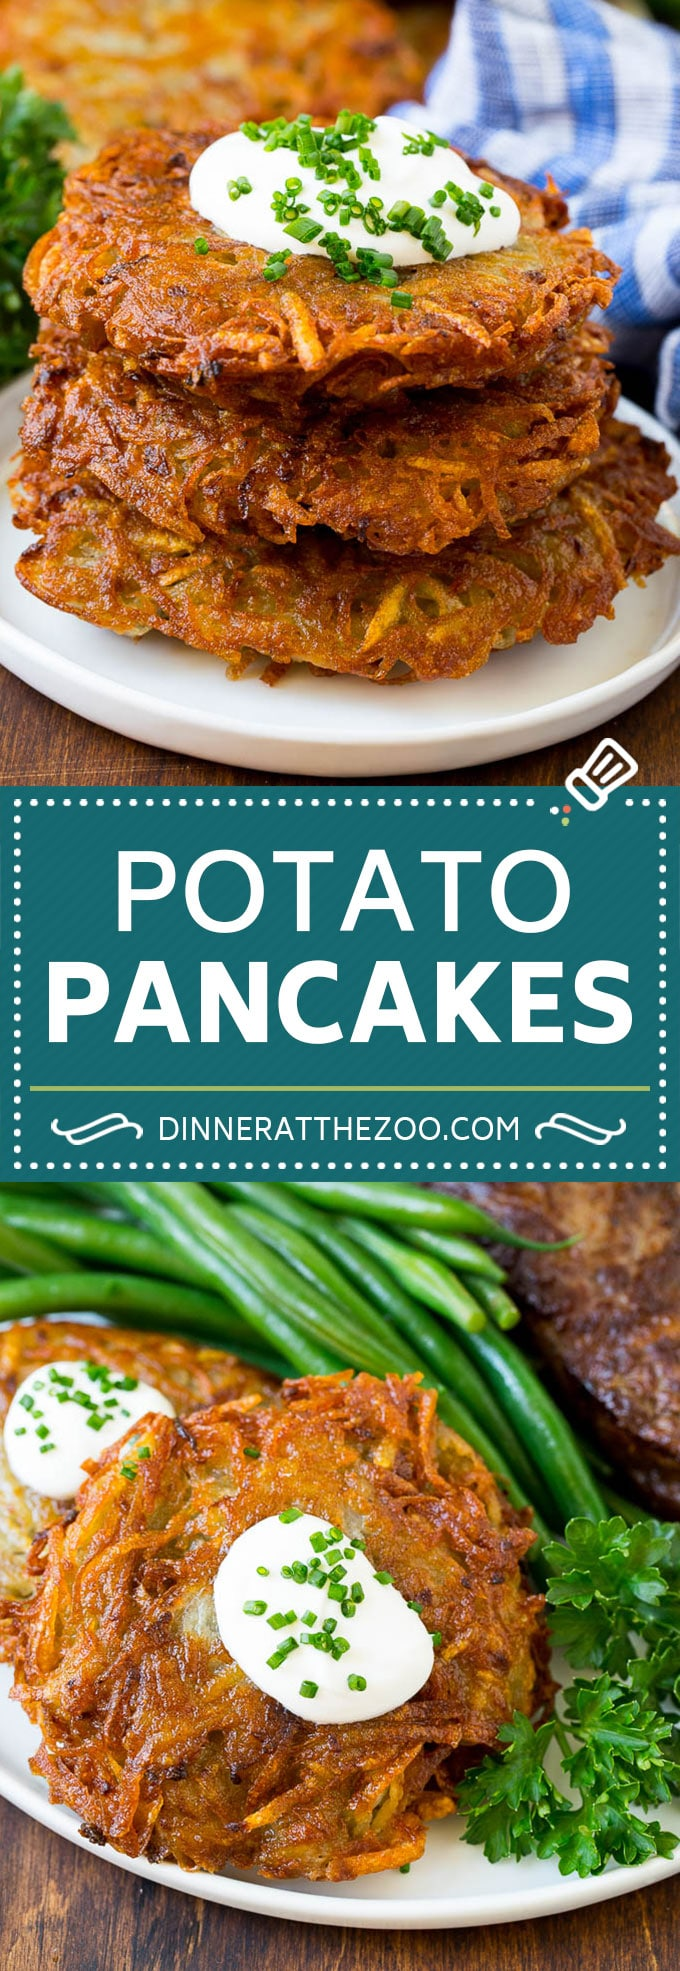 These potato pancakes are shredded potatoes combined with onions and seasoning, then pan fried until golden brown.